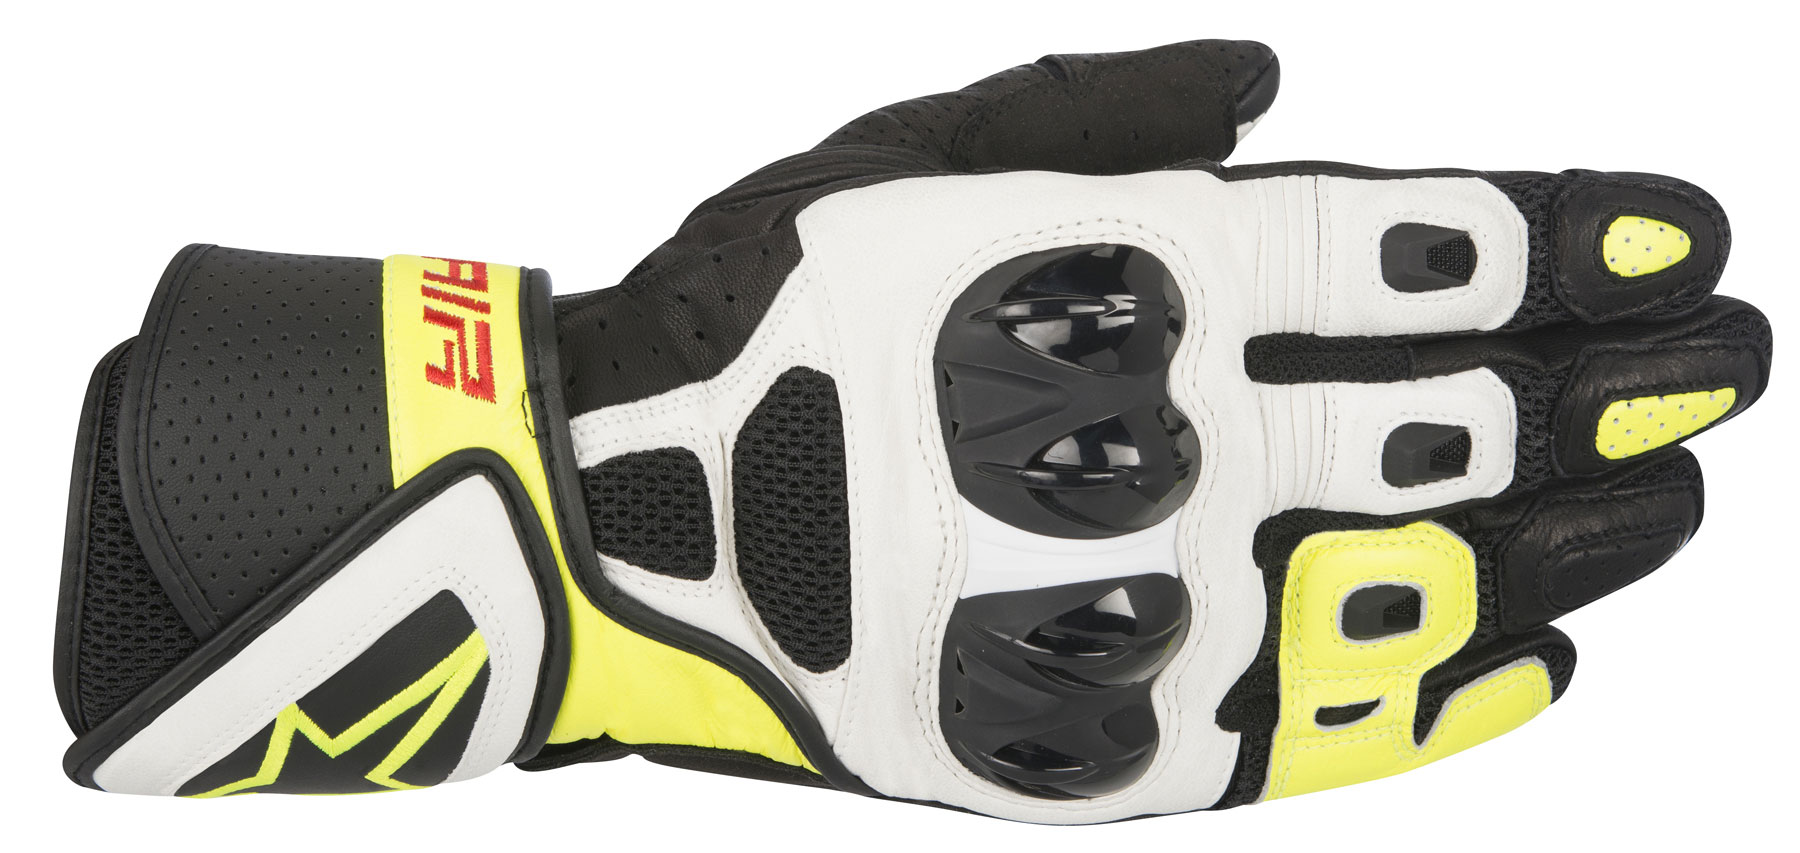 Alpinestars SP AIR Leather/Mesh Gloves (Black/White/Yellow)